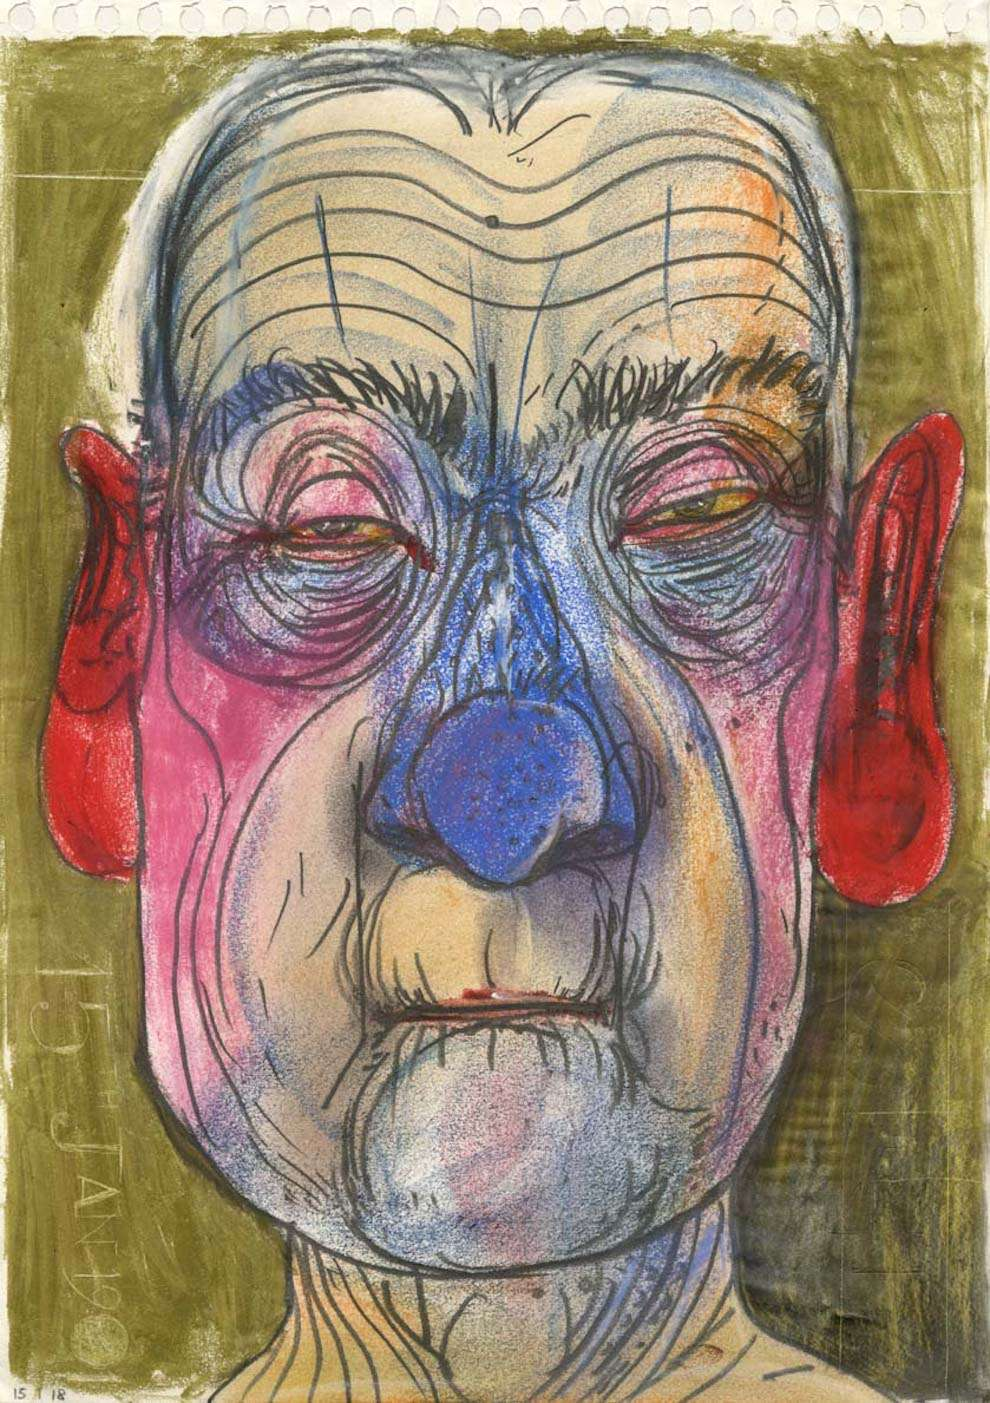 David Hughes, Oil pastel and pen portrait of an old sad man with red ears